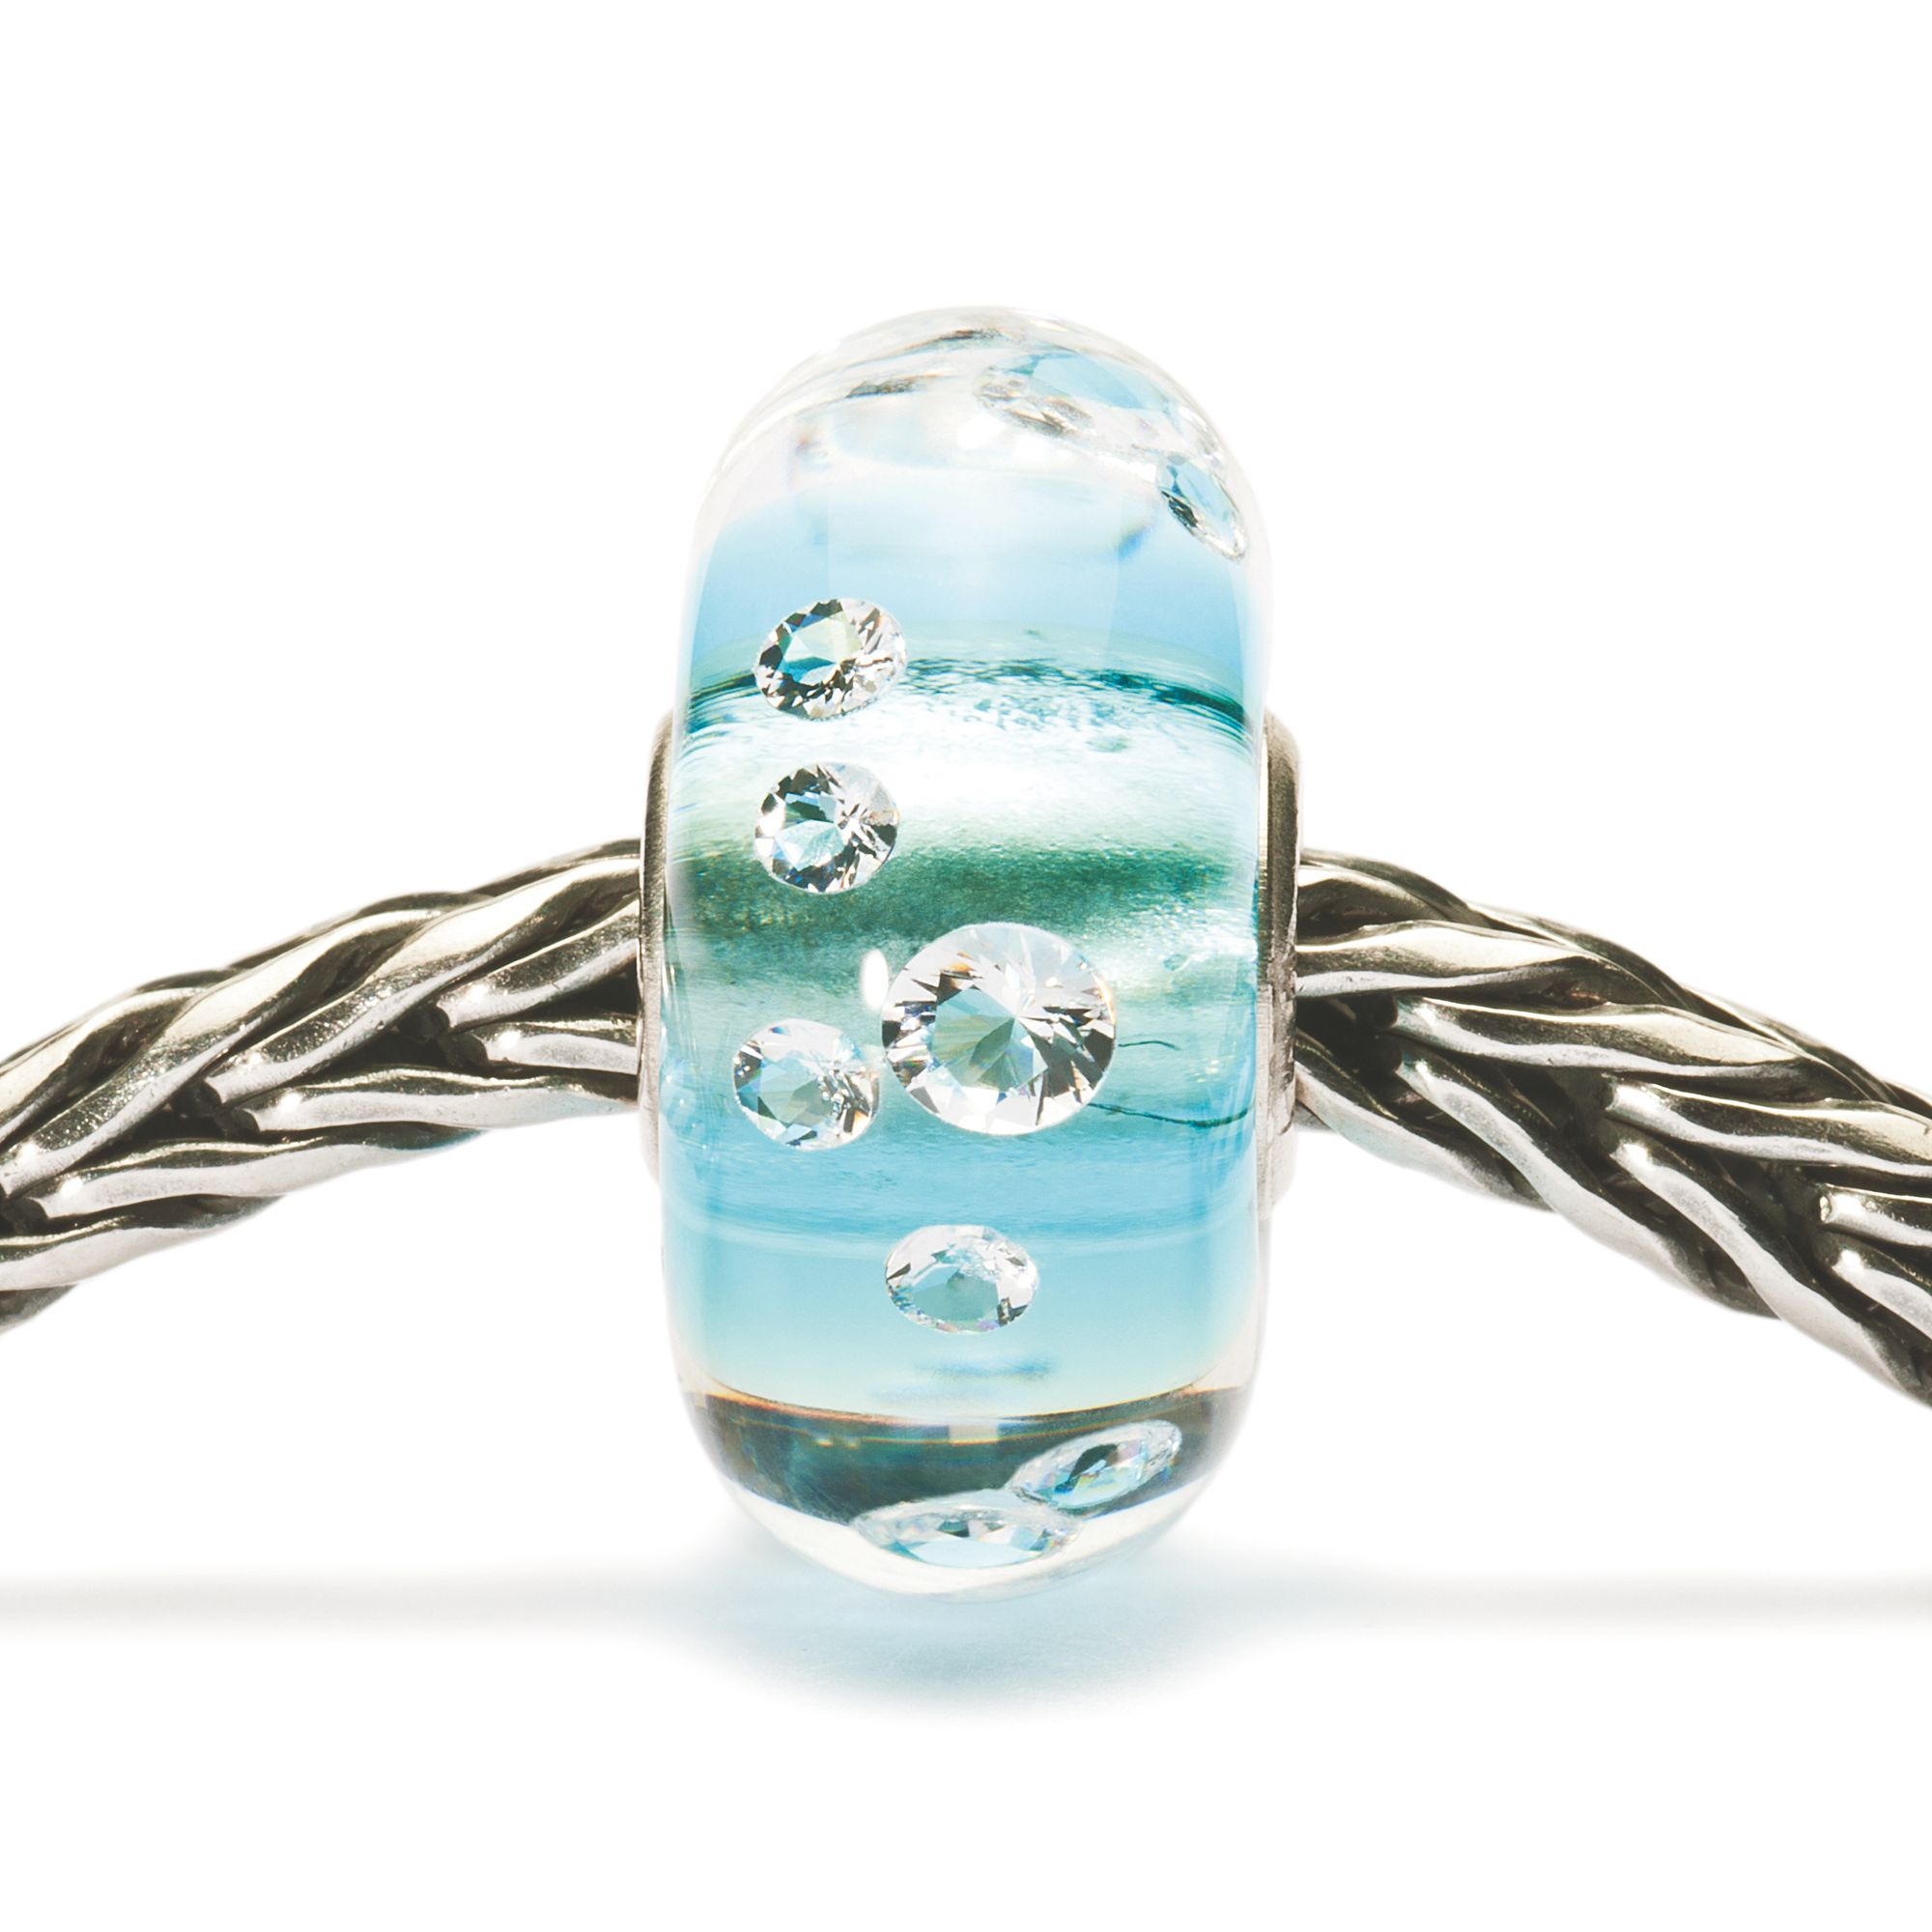 The Diamond Bead Ice blue Charm